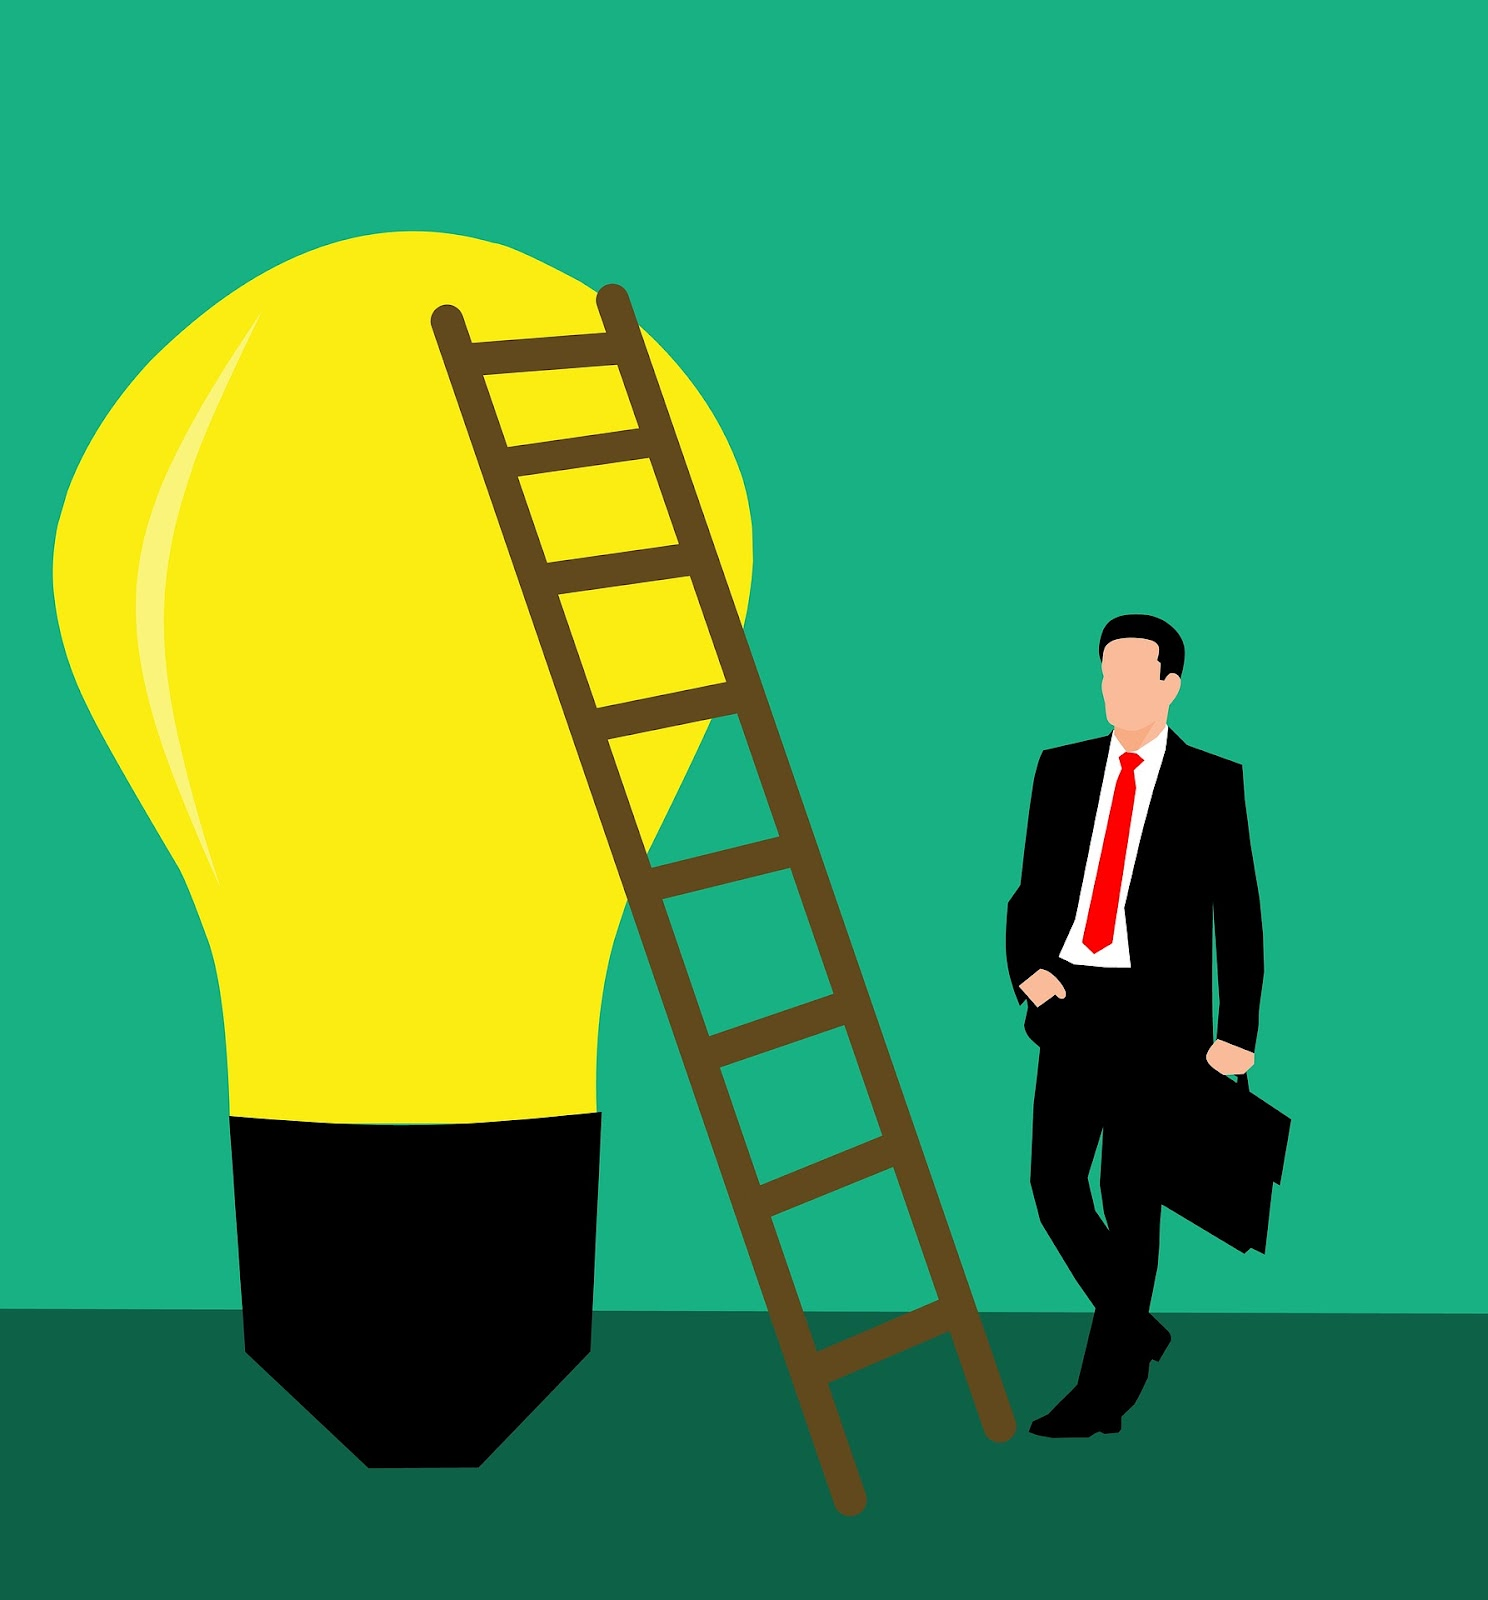 illustrations/stairs-idea-bulb-business-man-steps to business